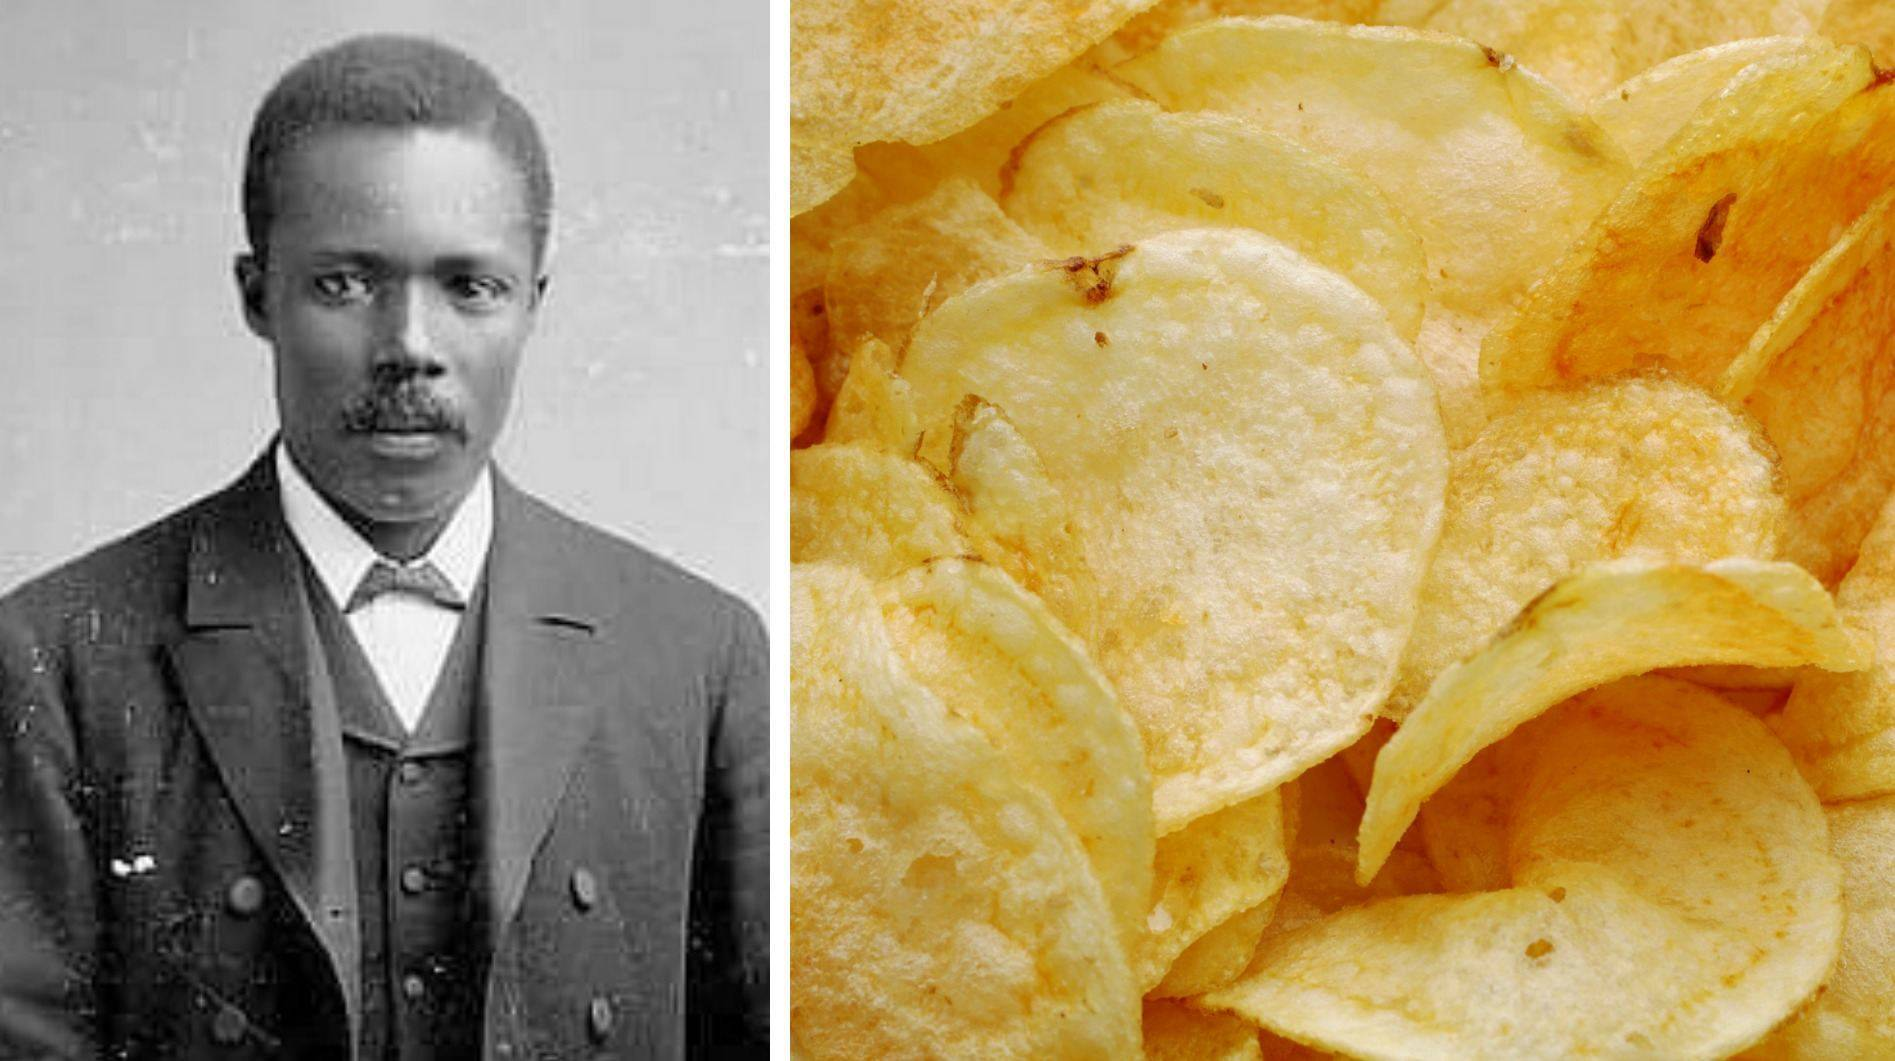 0f7e2333219b11352a7a_George-Crum-potato-chips.jpg